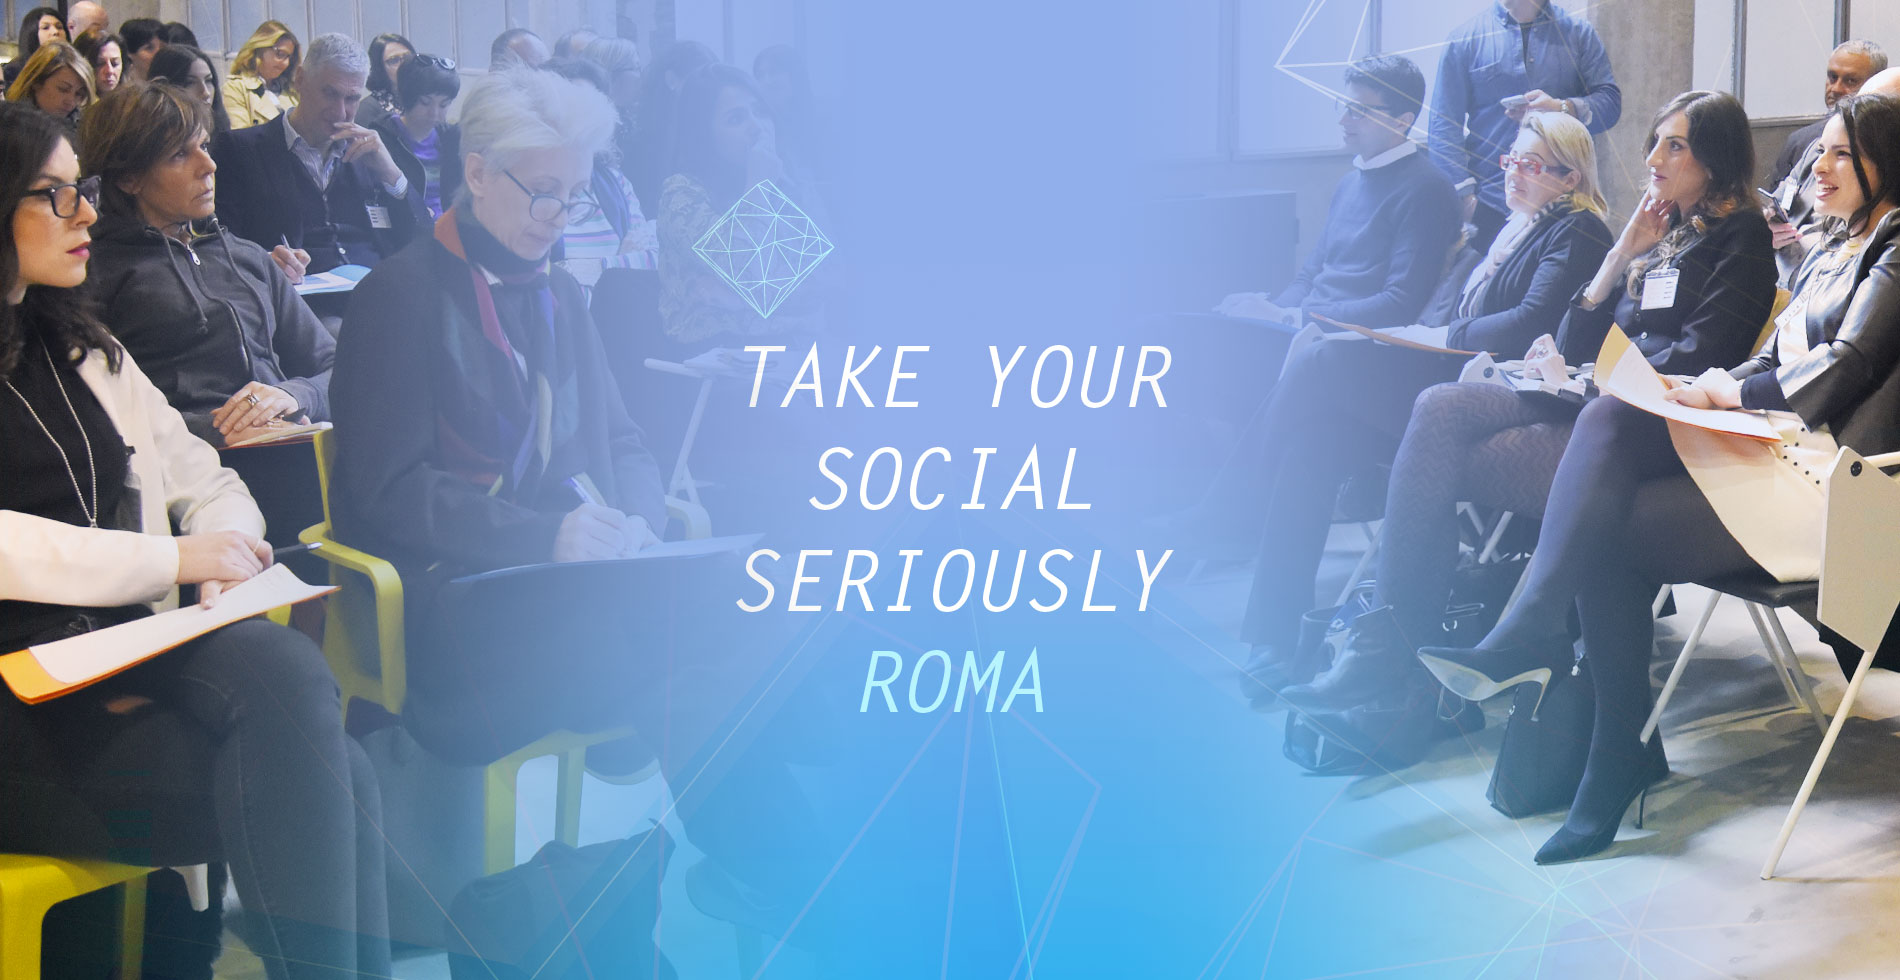 take your social seriously - roma